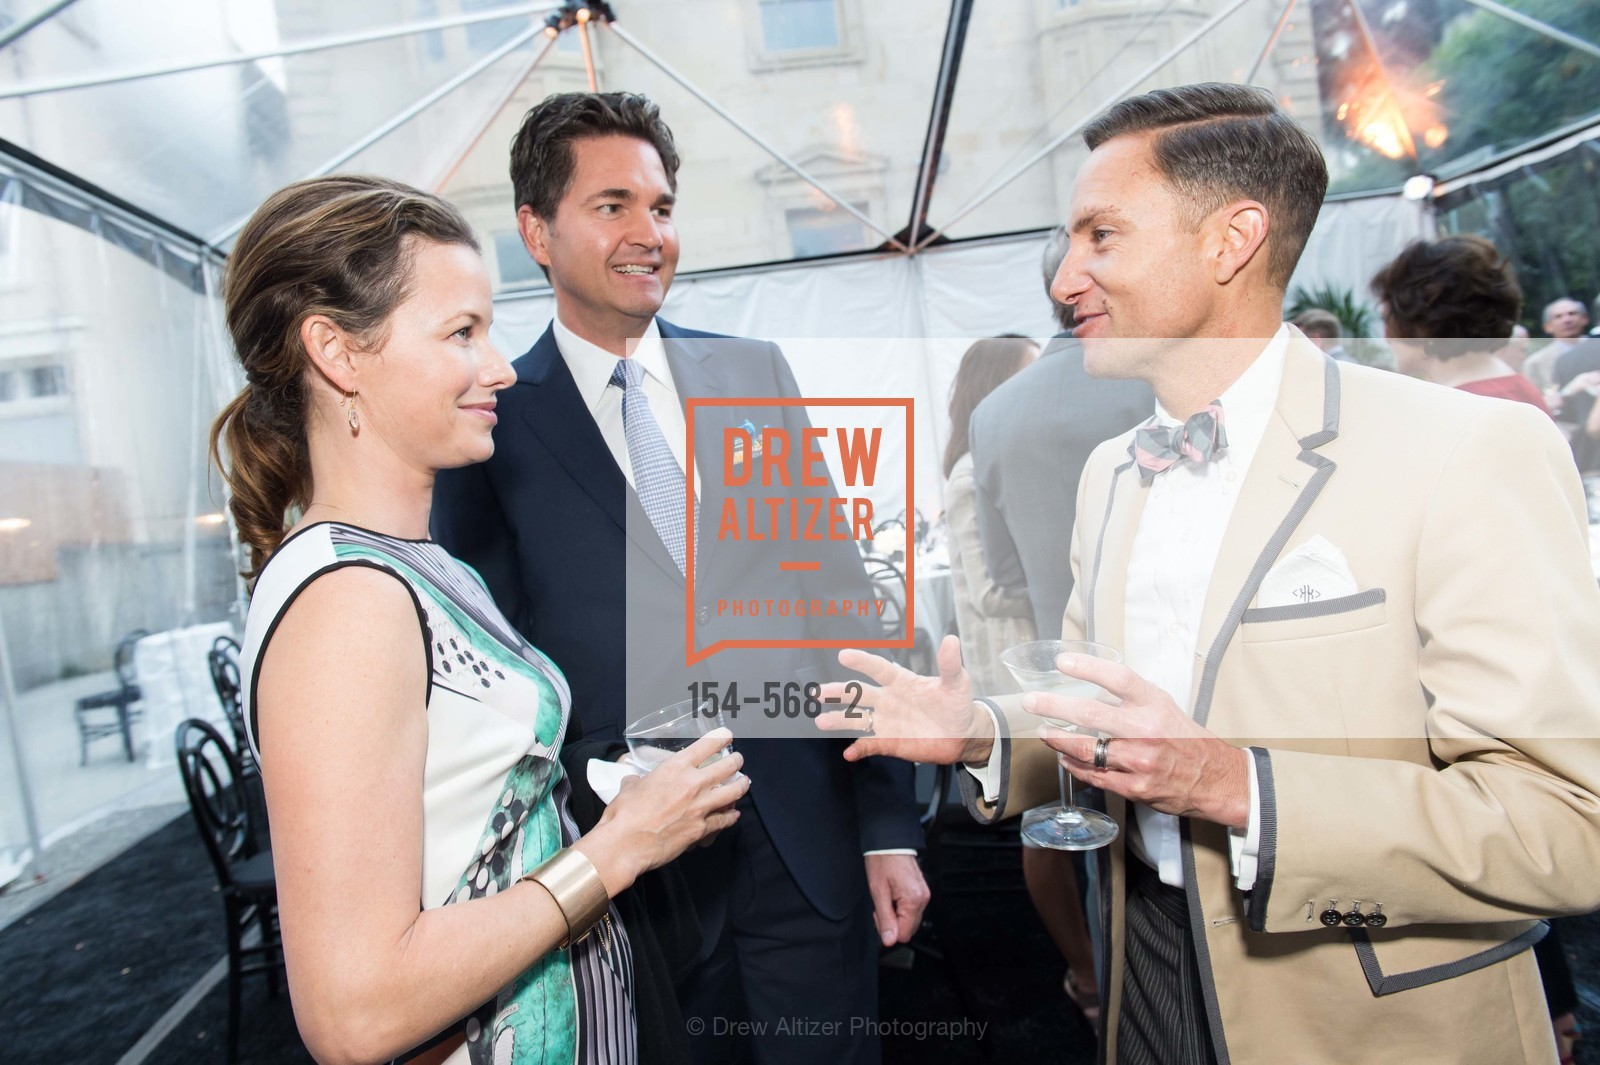 Lindsay Bolton, Alex Chases, Ken Fulk, SOTHEBY'S  Hosts a Private Viewing of Highlights from the Collection of MRS. PAUL MELLON, US, September 17th, 2014,Drew Altizer, Drew Altizer Photography, full-service agency, private events, San Francisco photographer, photographer california